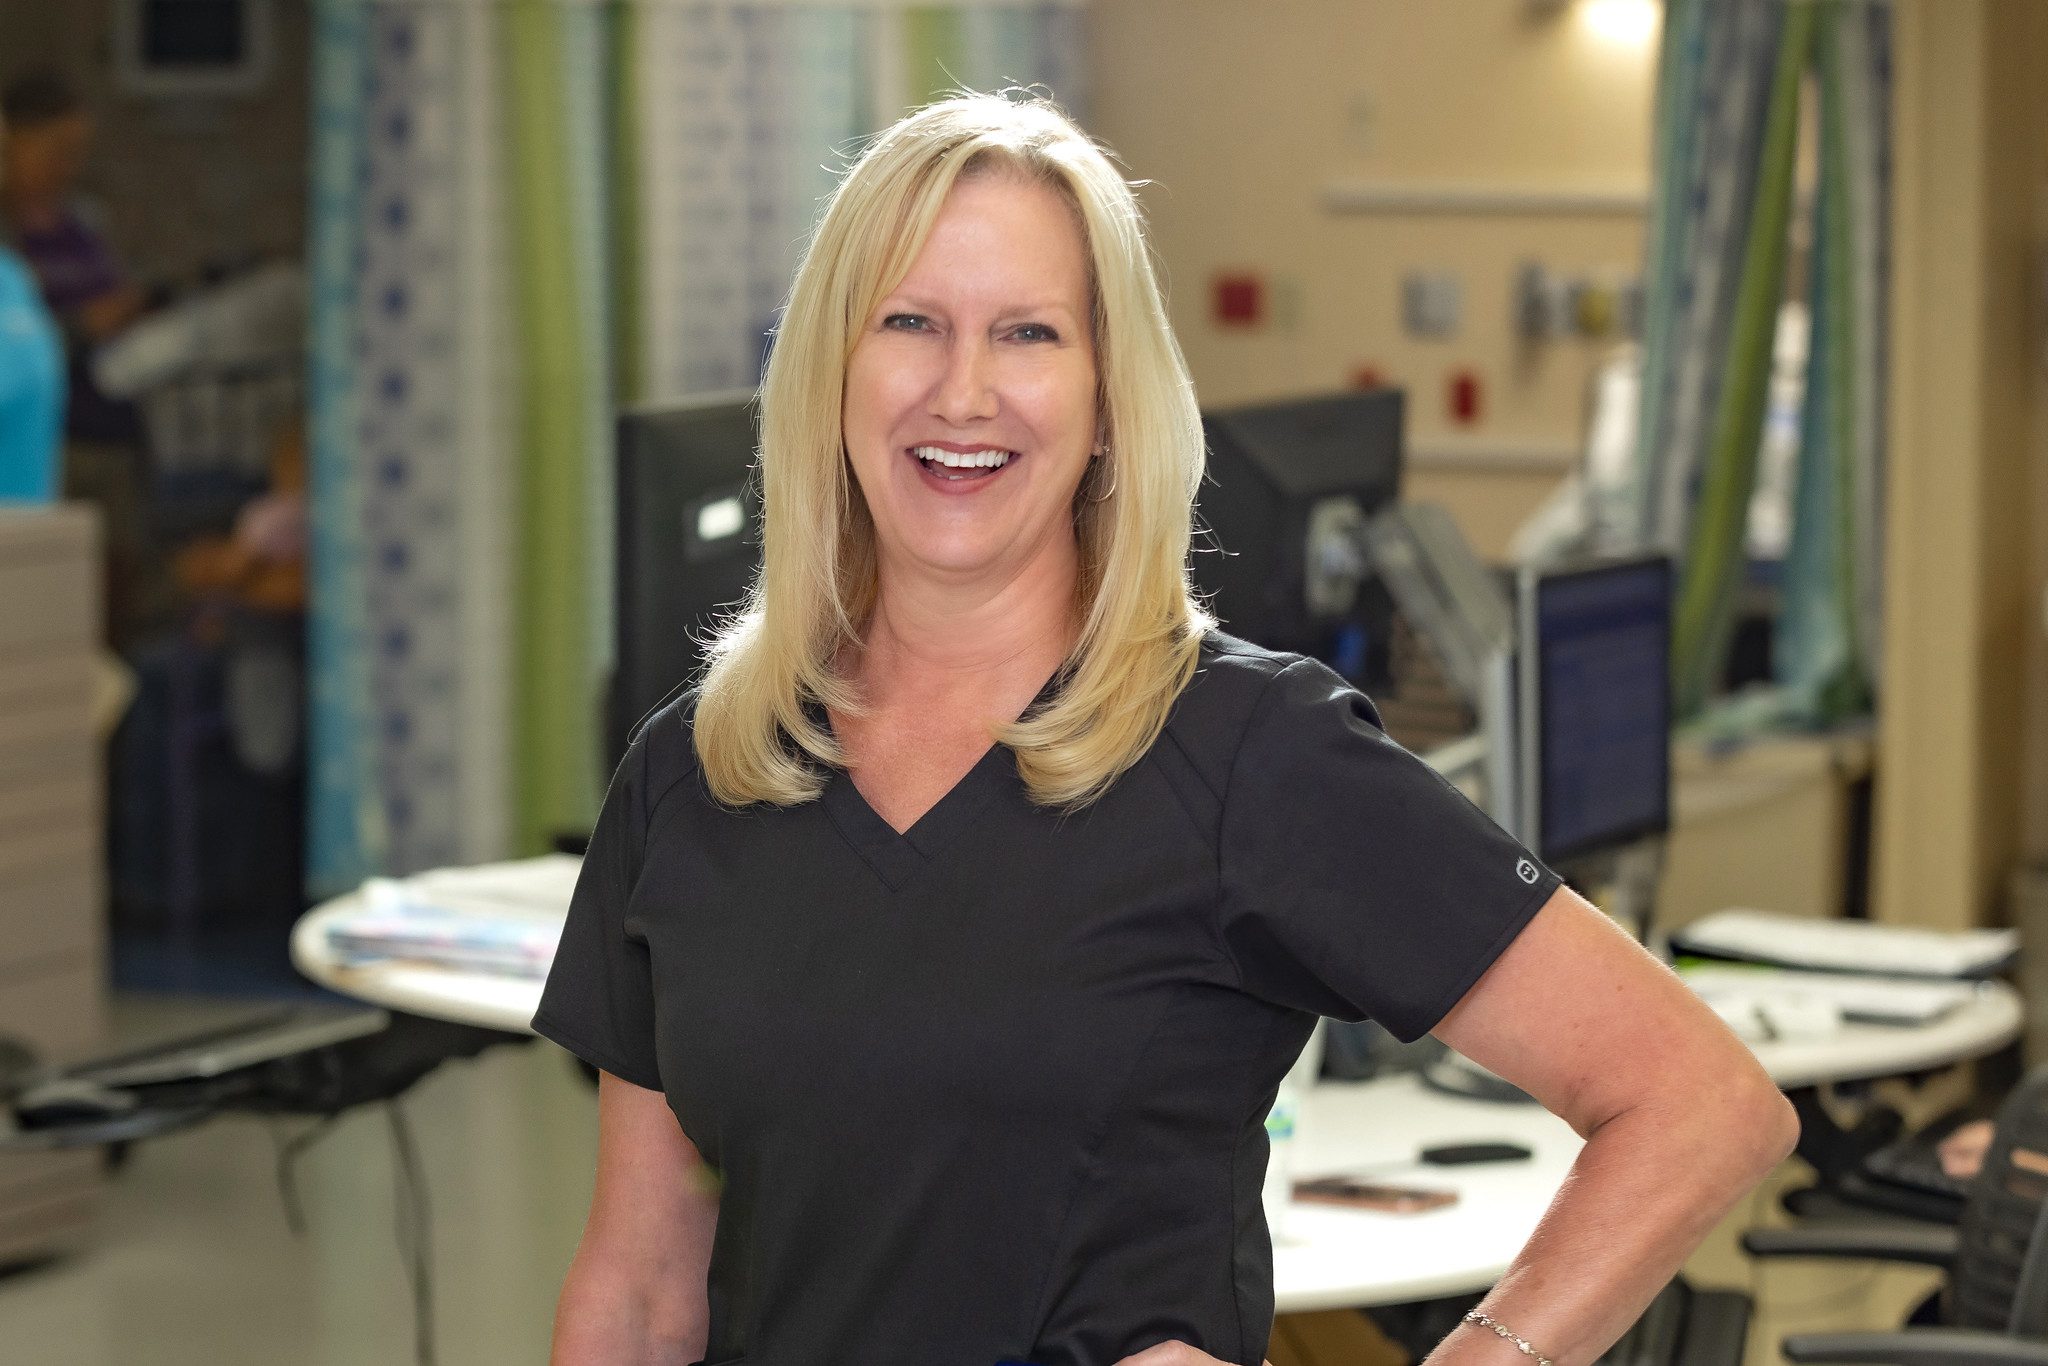 Sandra Horan, R.N., is a clinical manager in Perioperative Services at Johns Hopkins All Children's.